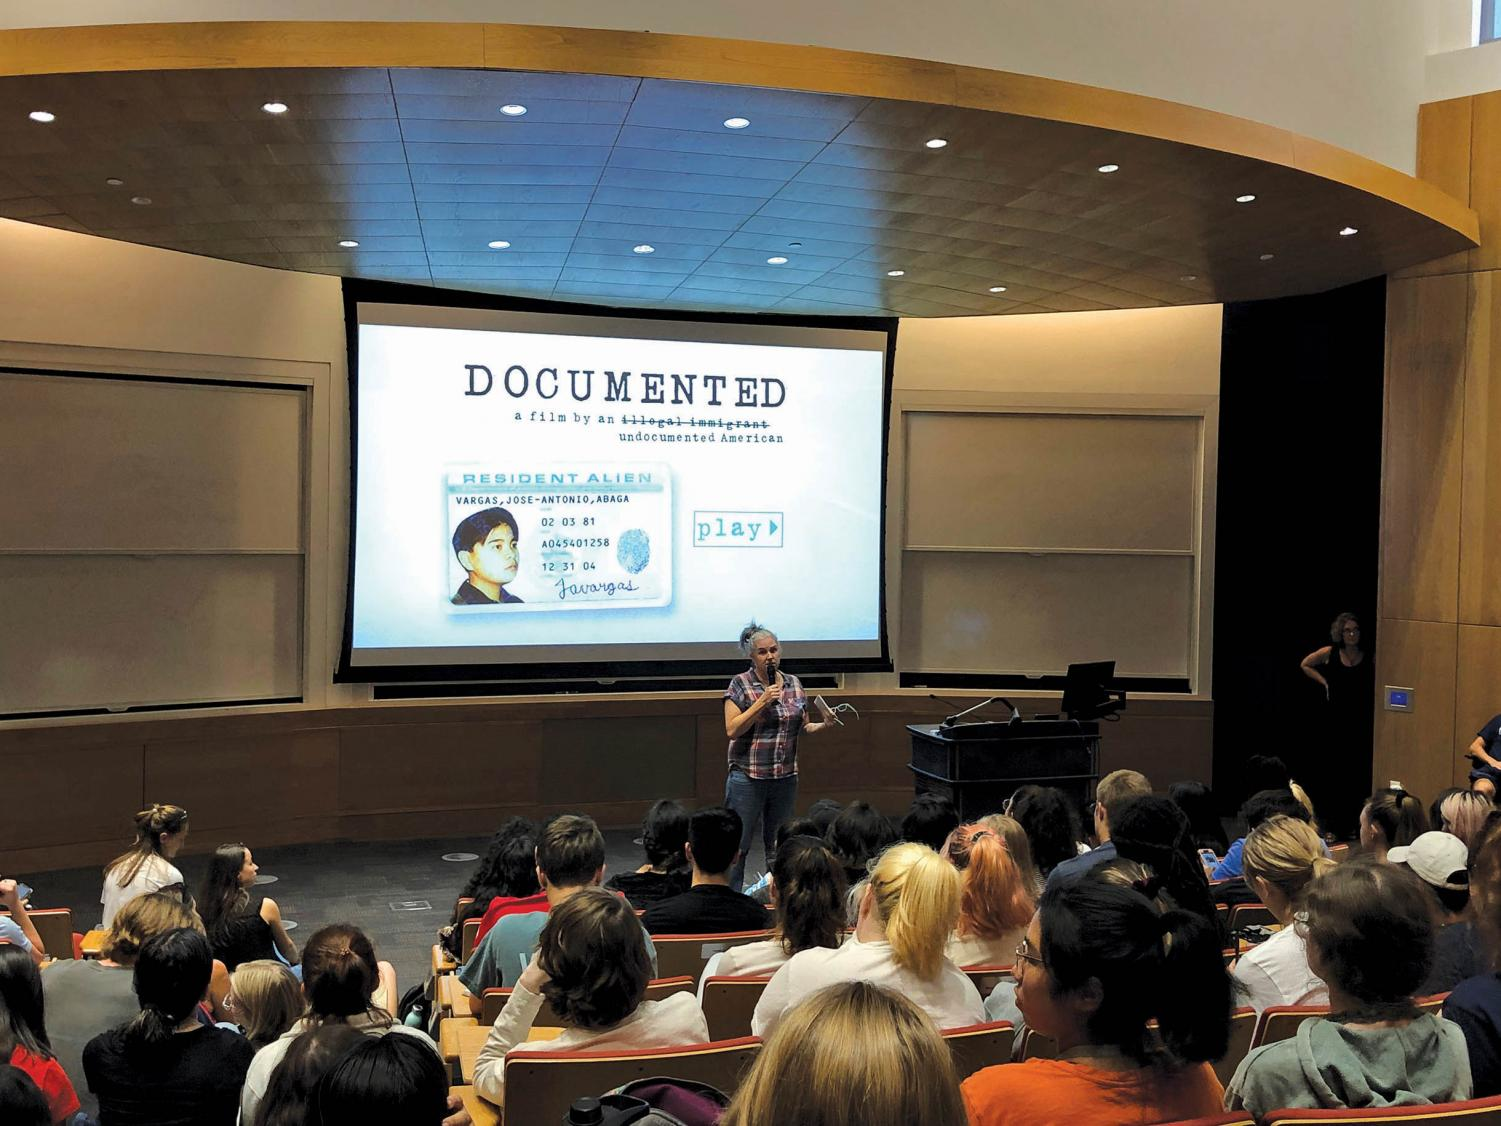 Freshman students were  invited to a viewing of Jose Antonio Vargas' documentary which is  also based on his book. The film deals with his struggles of immigration, which was the common theme chosen for this year's freshman class.